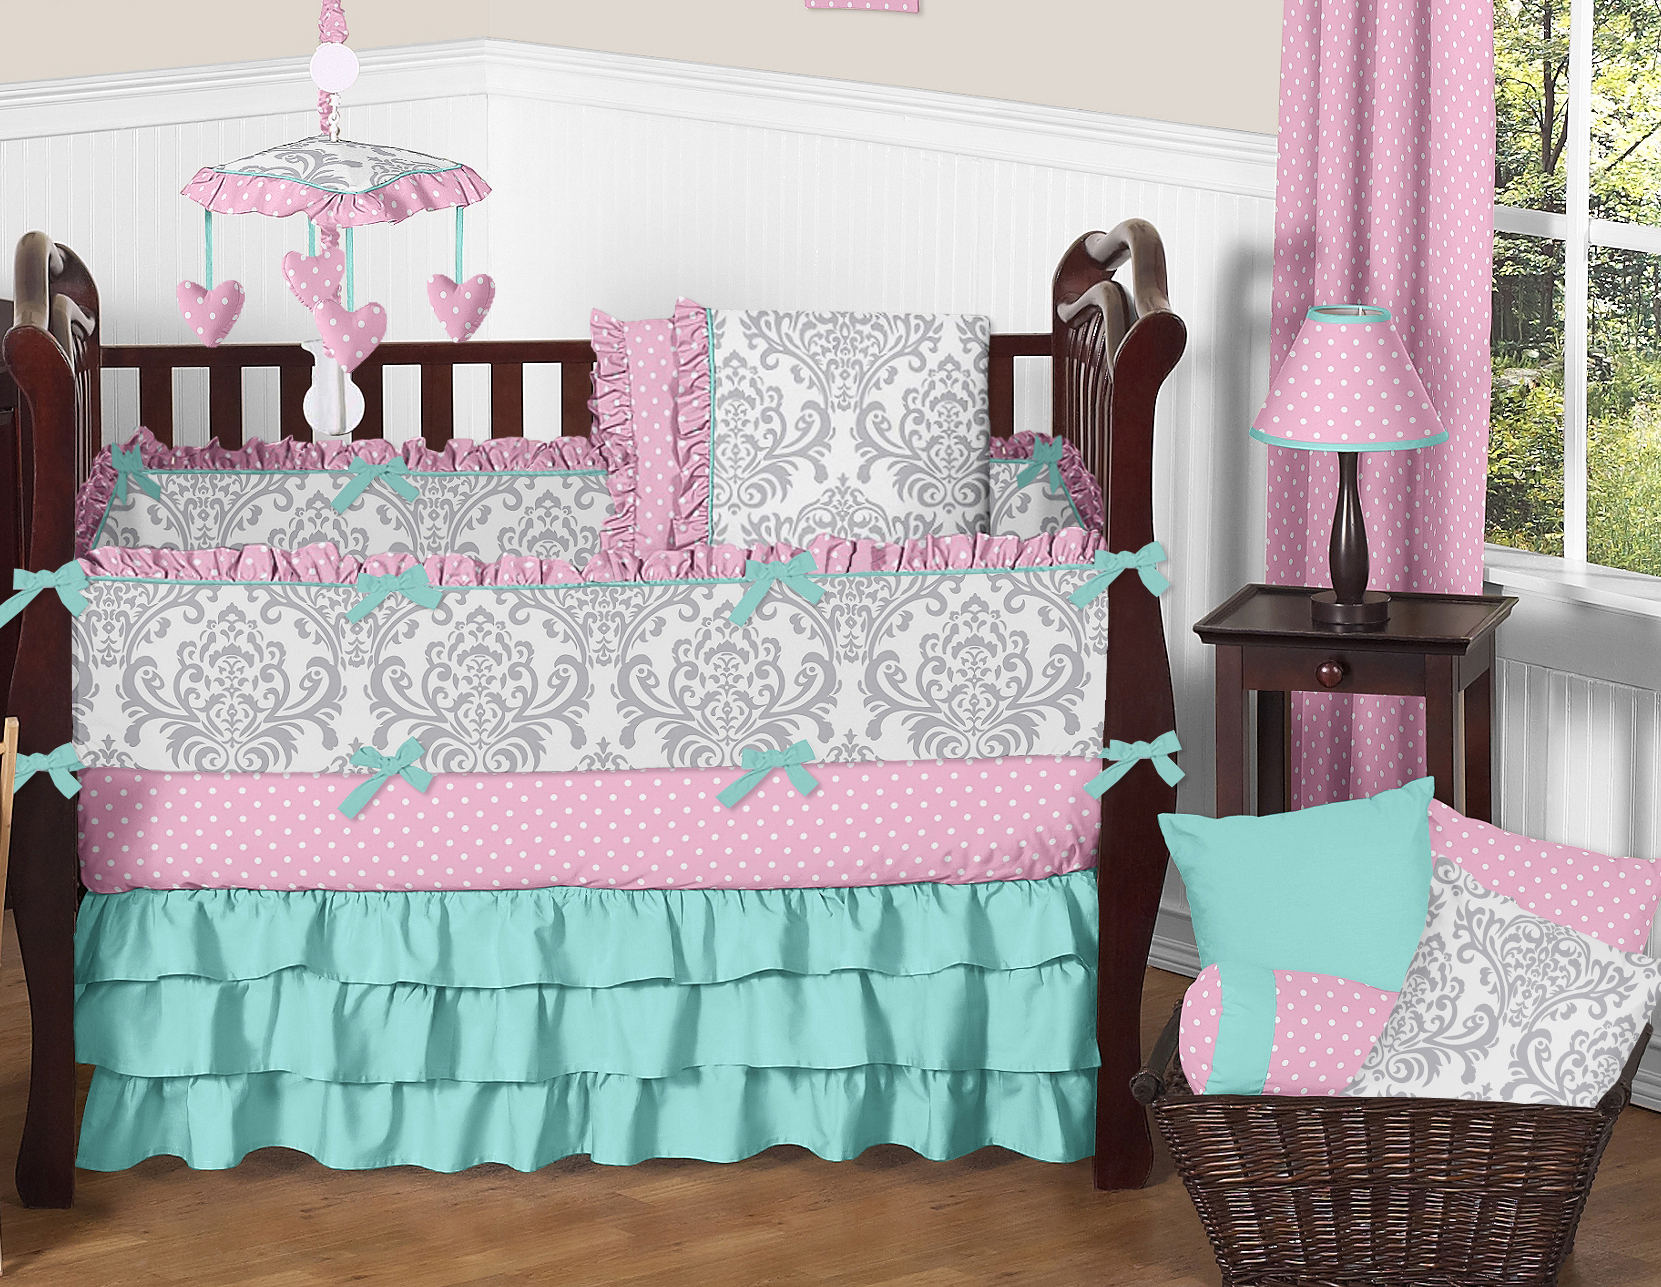 crib sets sweet jojo designs pink, gray and turquoise skylar baby bedding 9pc girls crib bfgzqyj